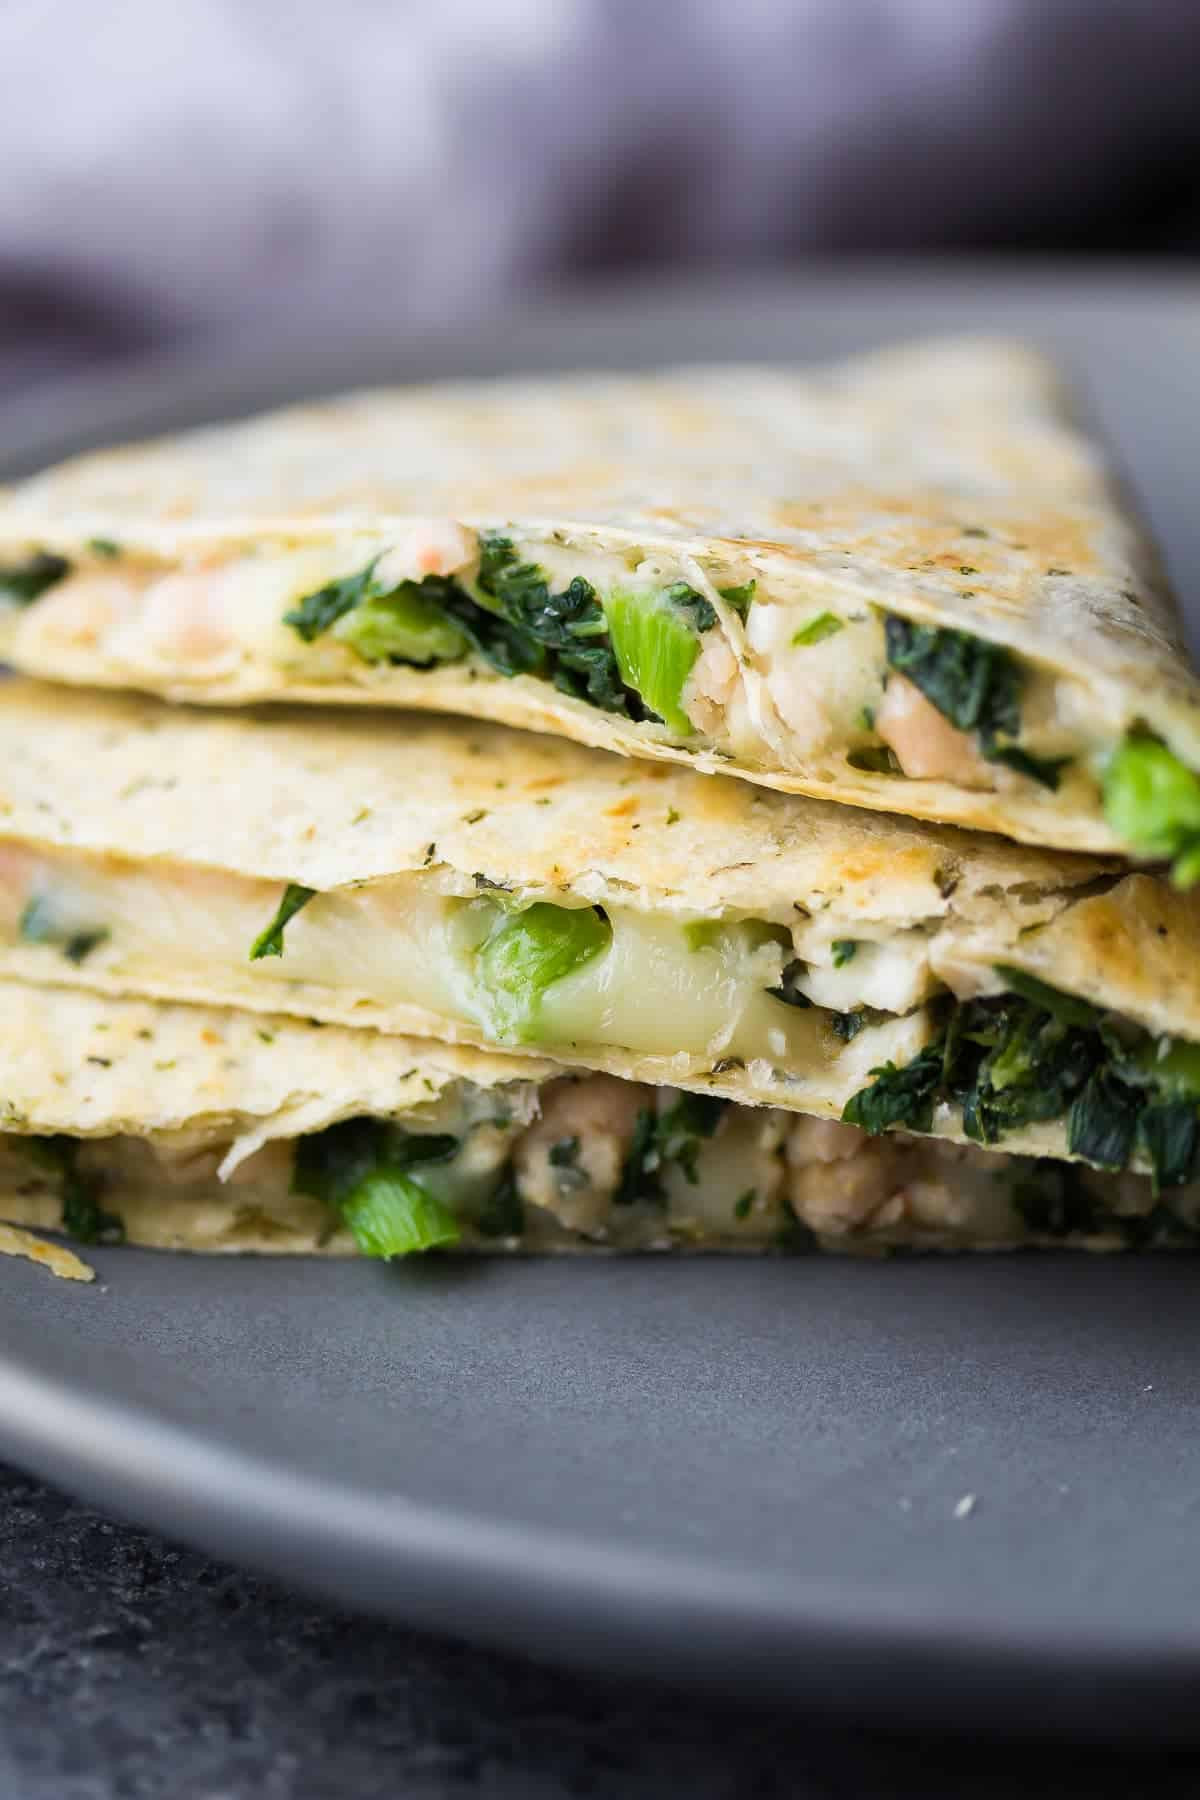 These Smashed White Bean & Spinach Quesadillas (Freezer Friendly) are a great healthy meal prep work lunch option that will actually keep you full!